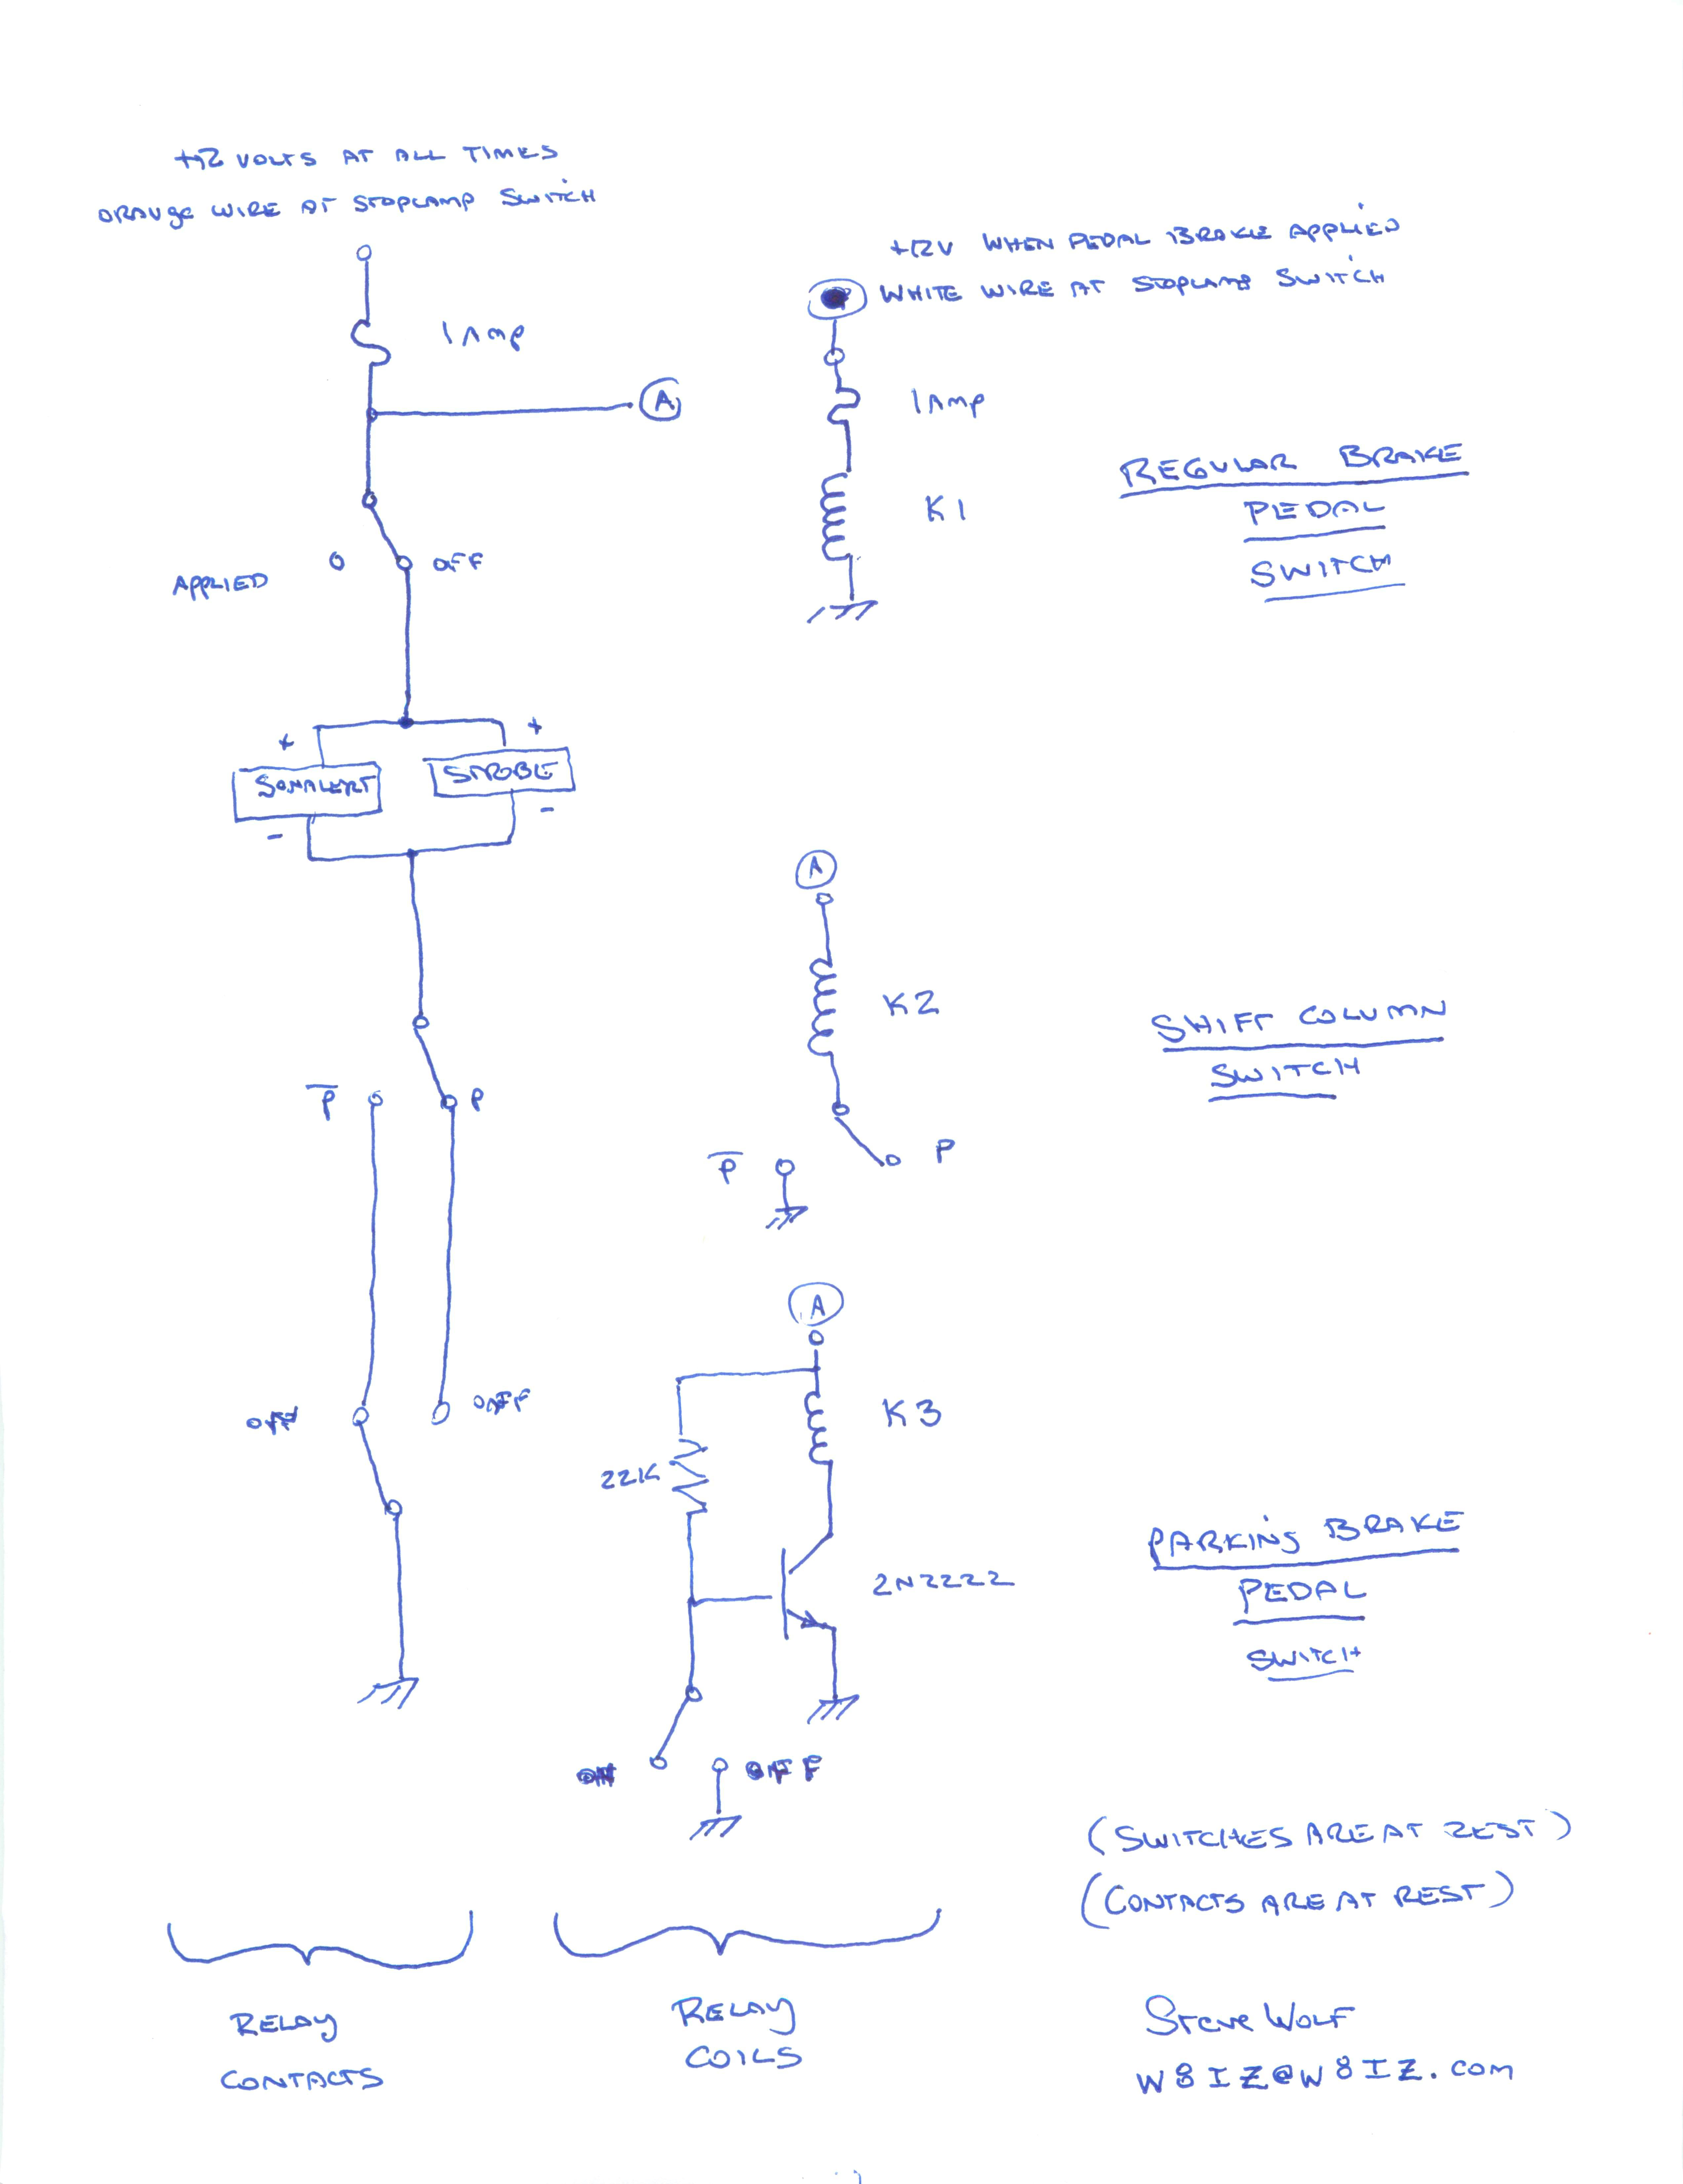 [wrg-7159] 1978 holiday rambler 50 amp rv plug wiring diagram